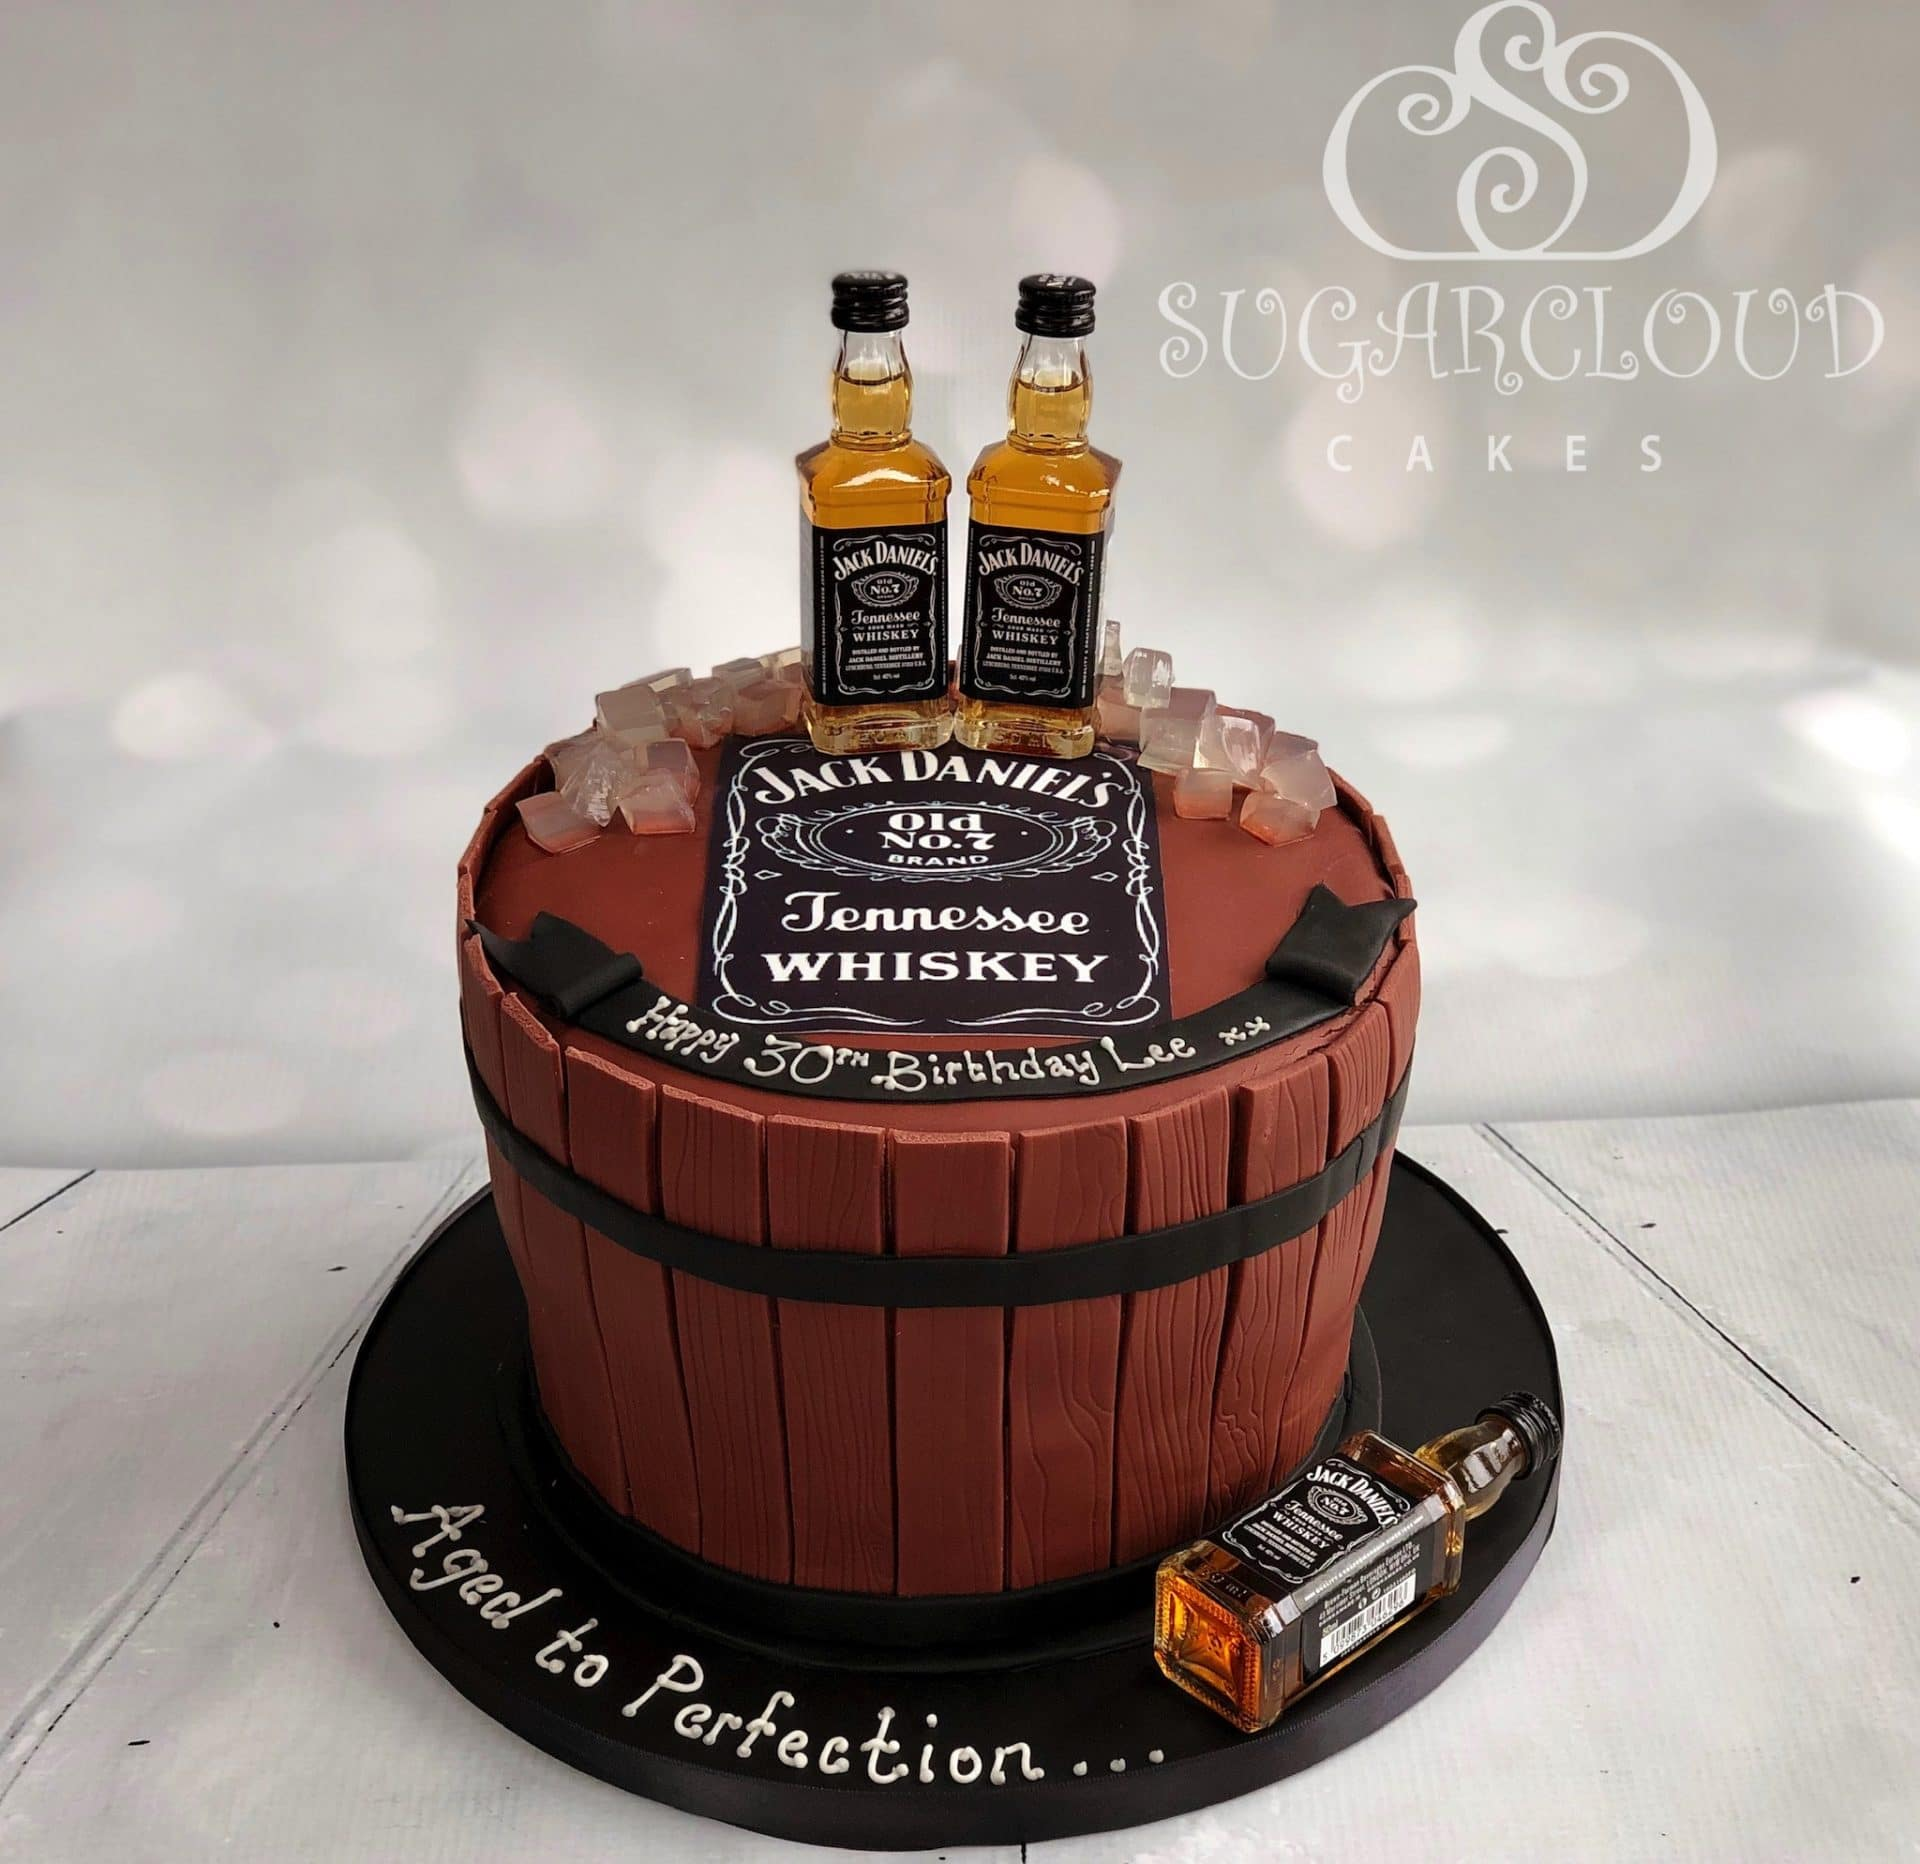 Jack Daniel's 30th Birthday Whiskey Cake